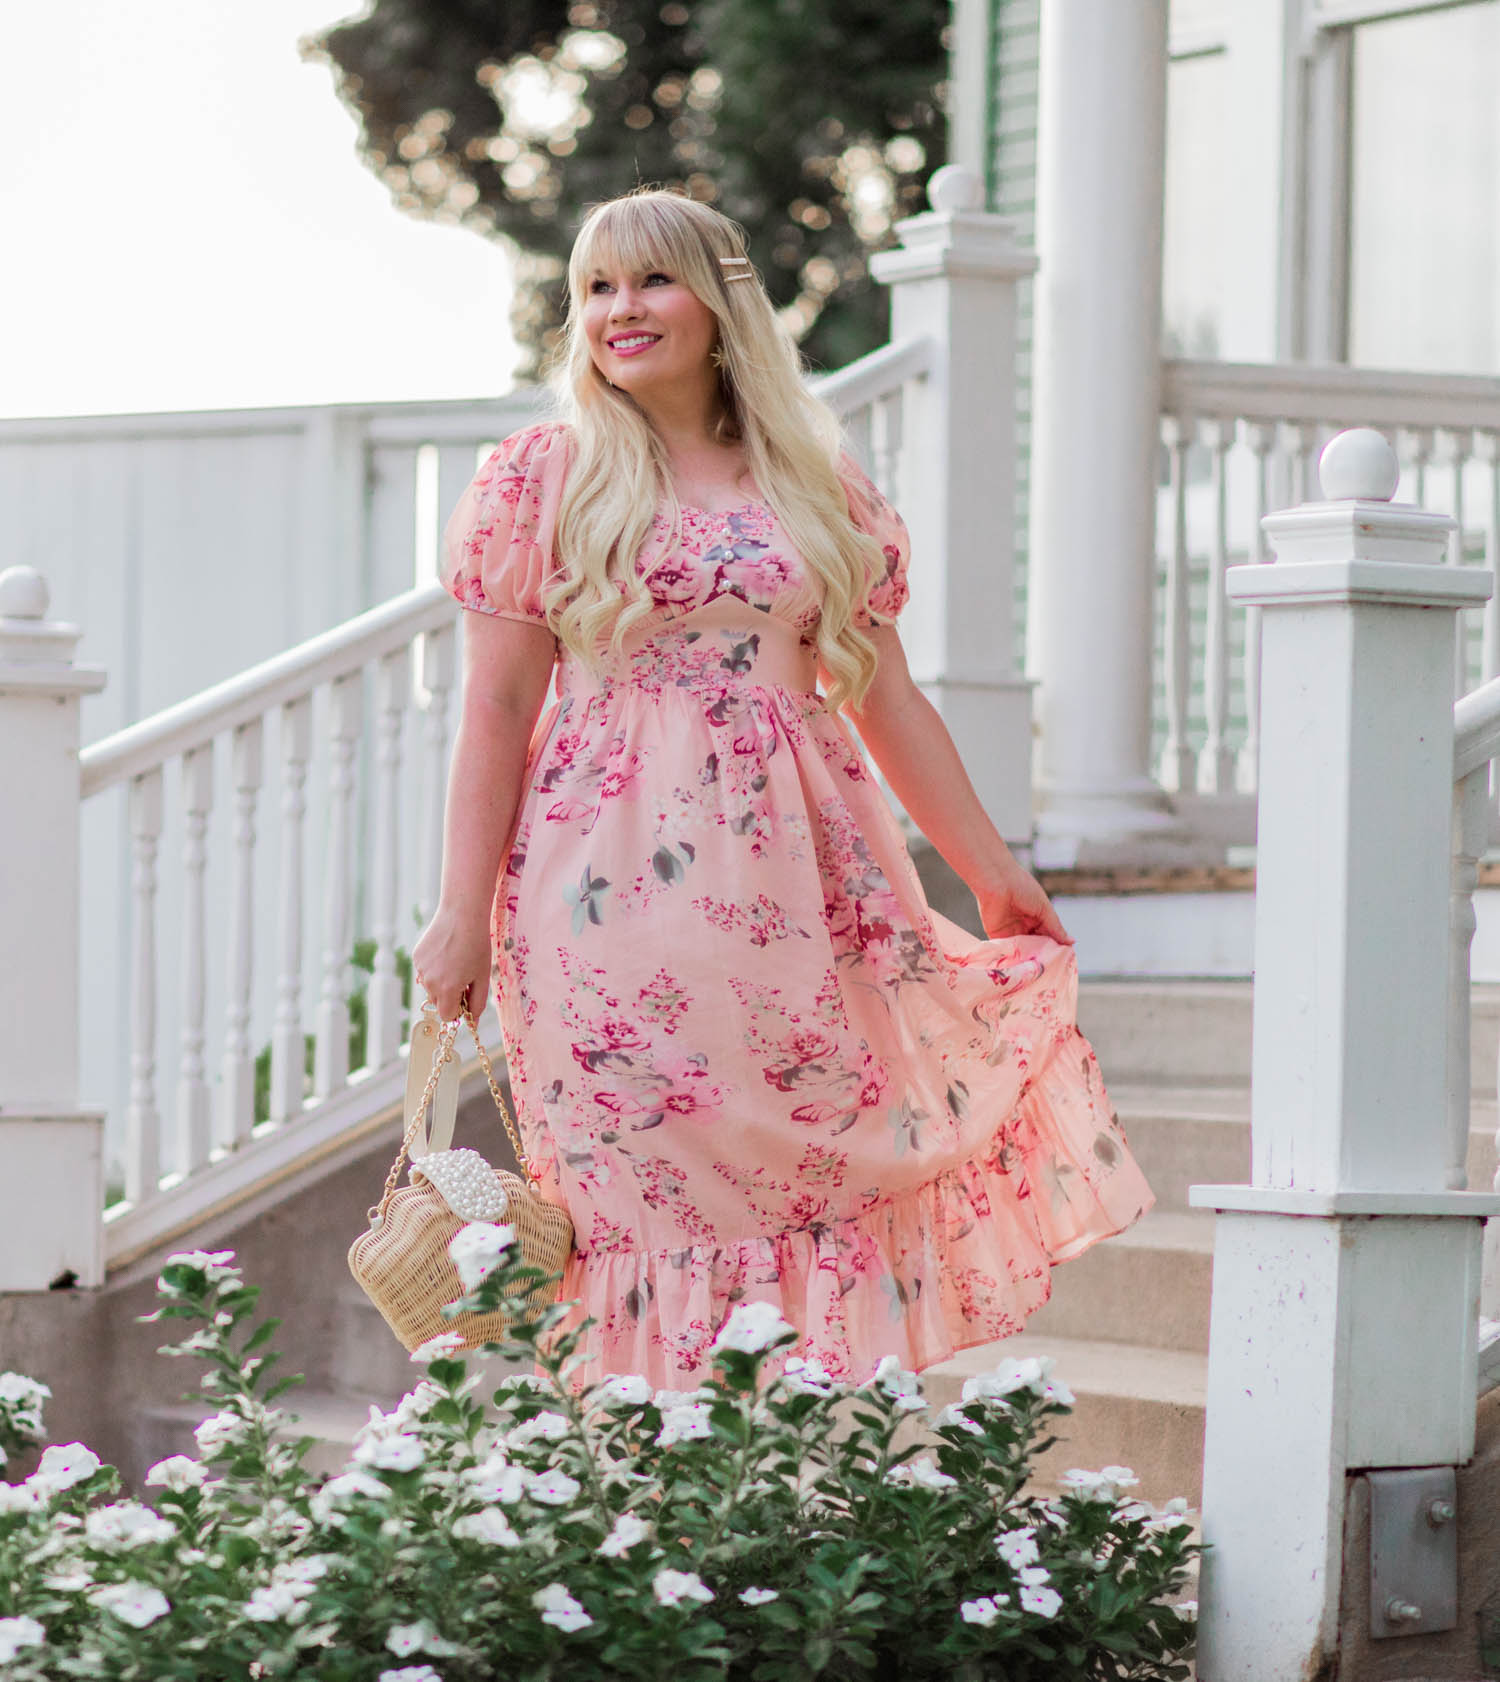 Elizabeth Hugen of Lizzie in Lace wears a pink floral ruffle dress!